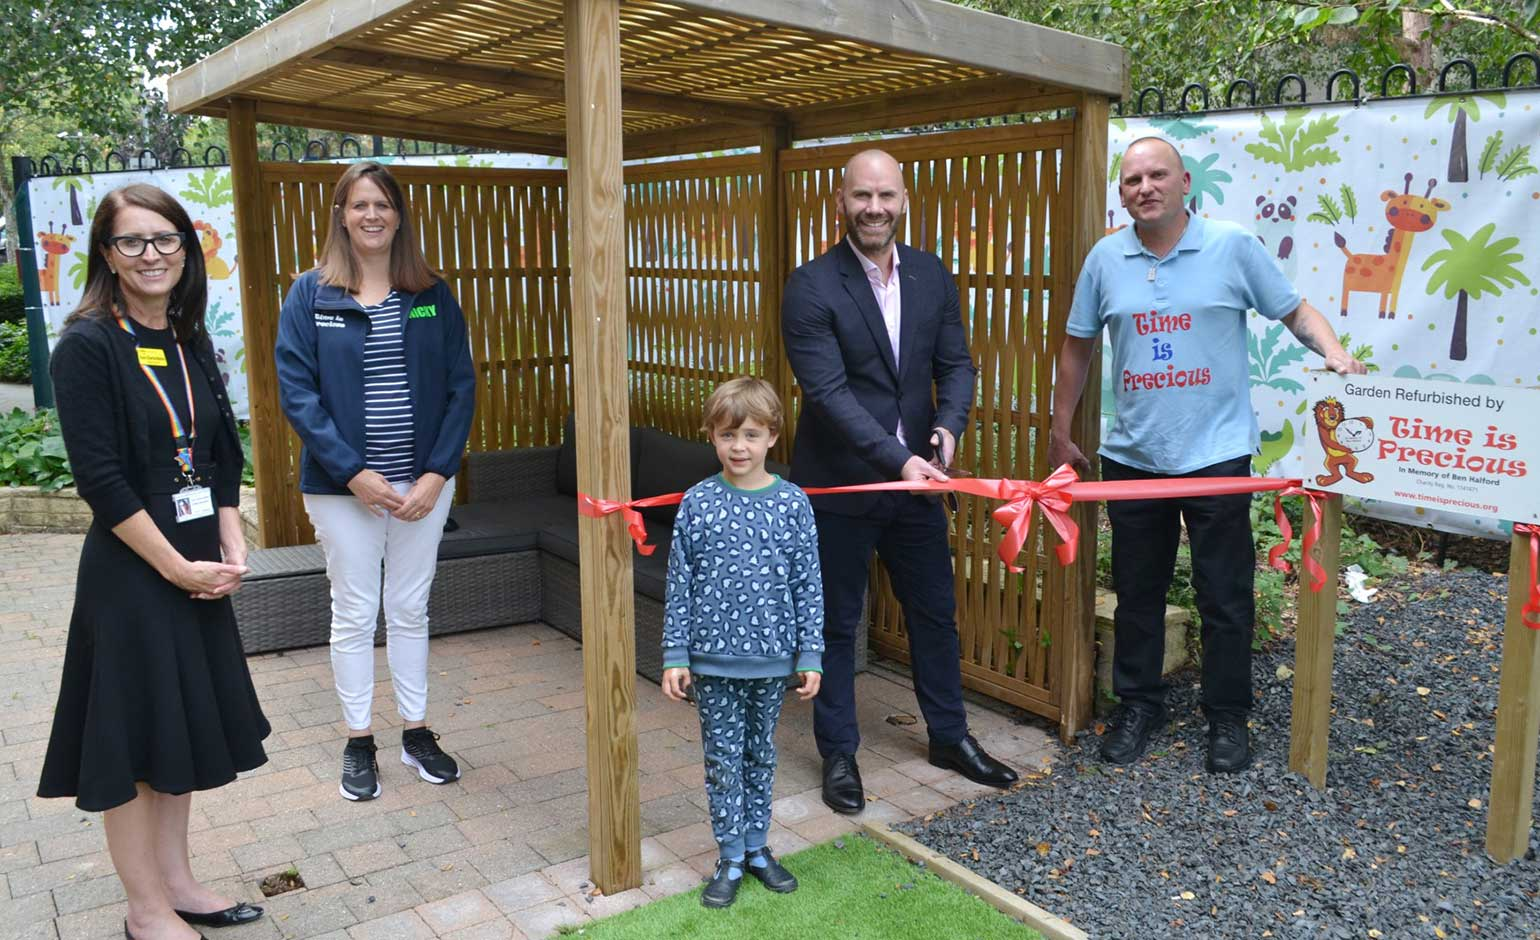 RUH unveils new garden area to help younger patients play and relax